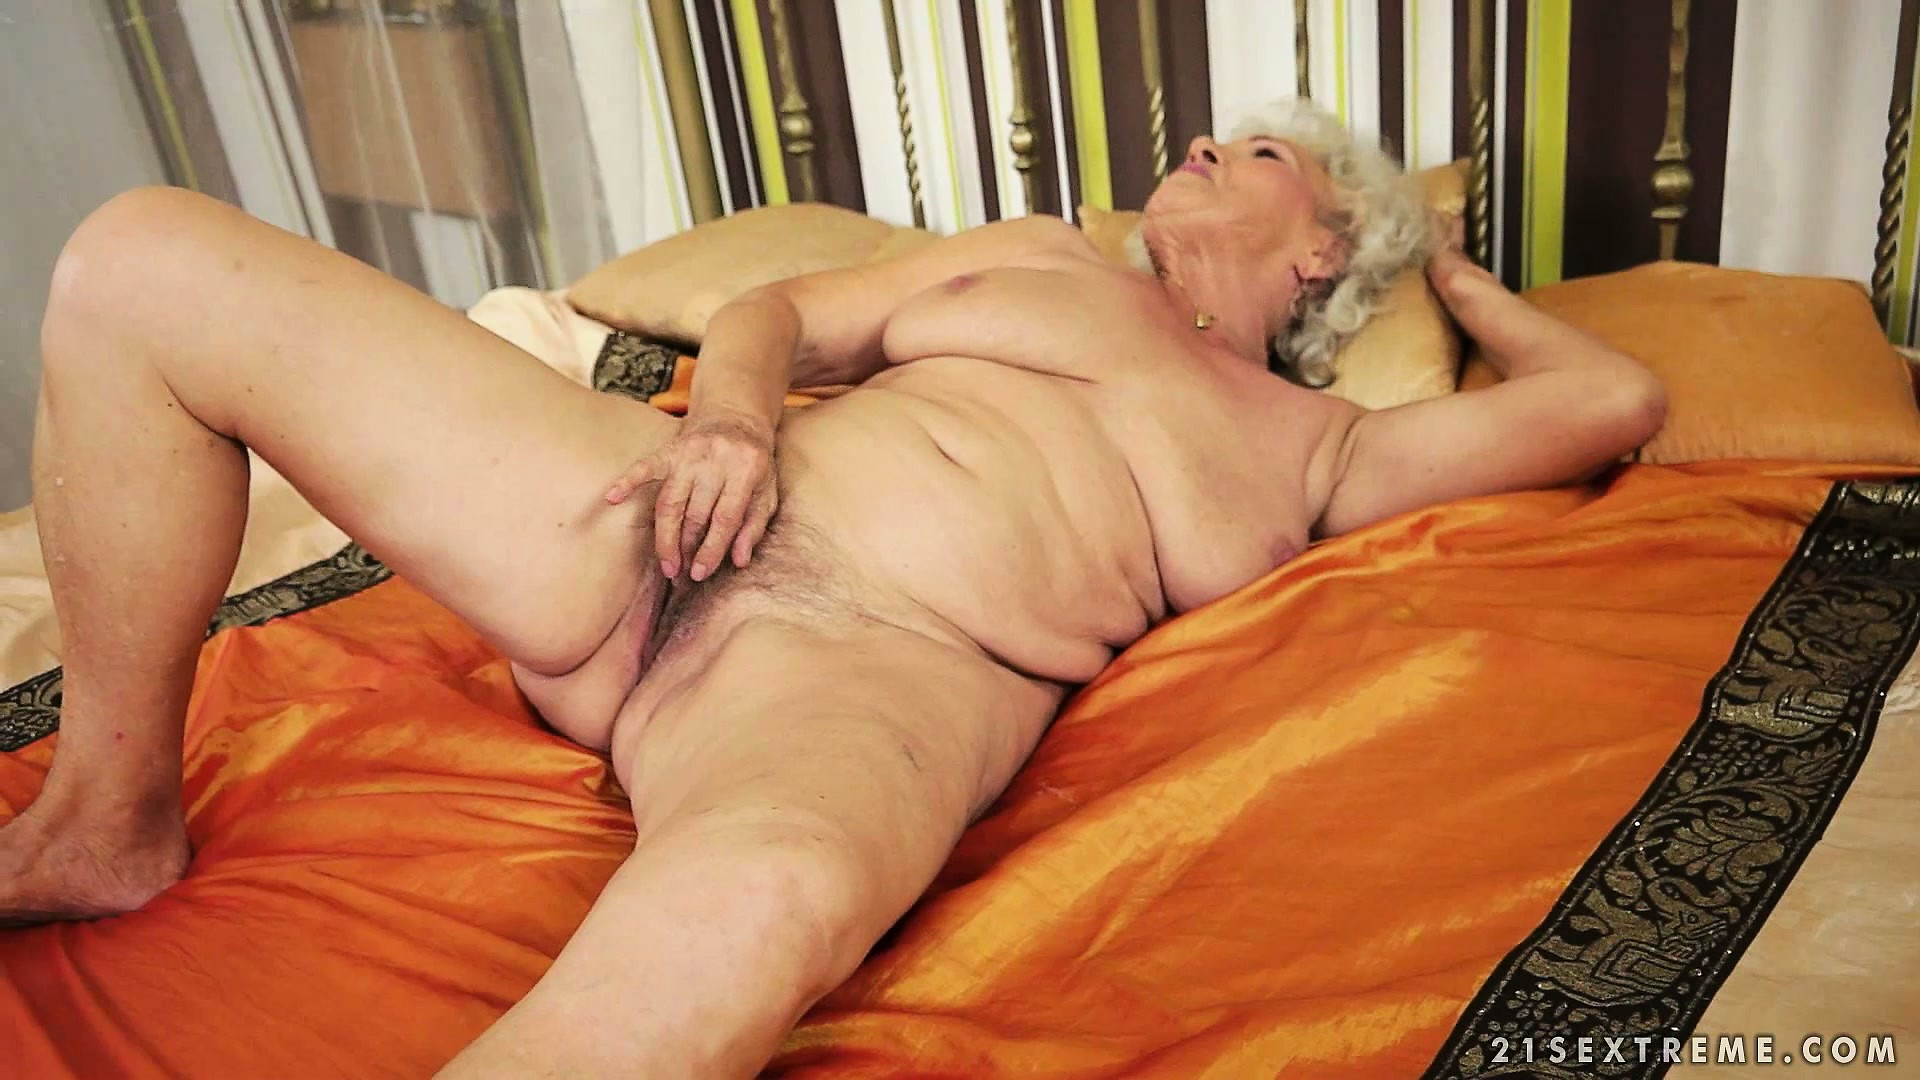 Porn Tube of Chubby Old Granny, With White Hair, Lets Her Fingers Do The Walking In Her Furry Muff